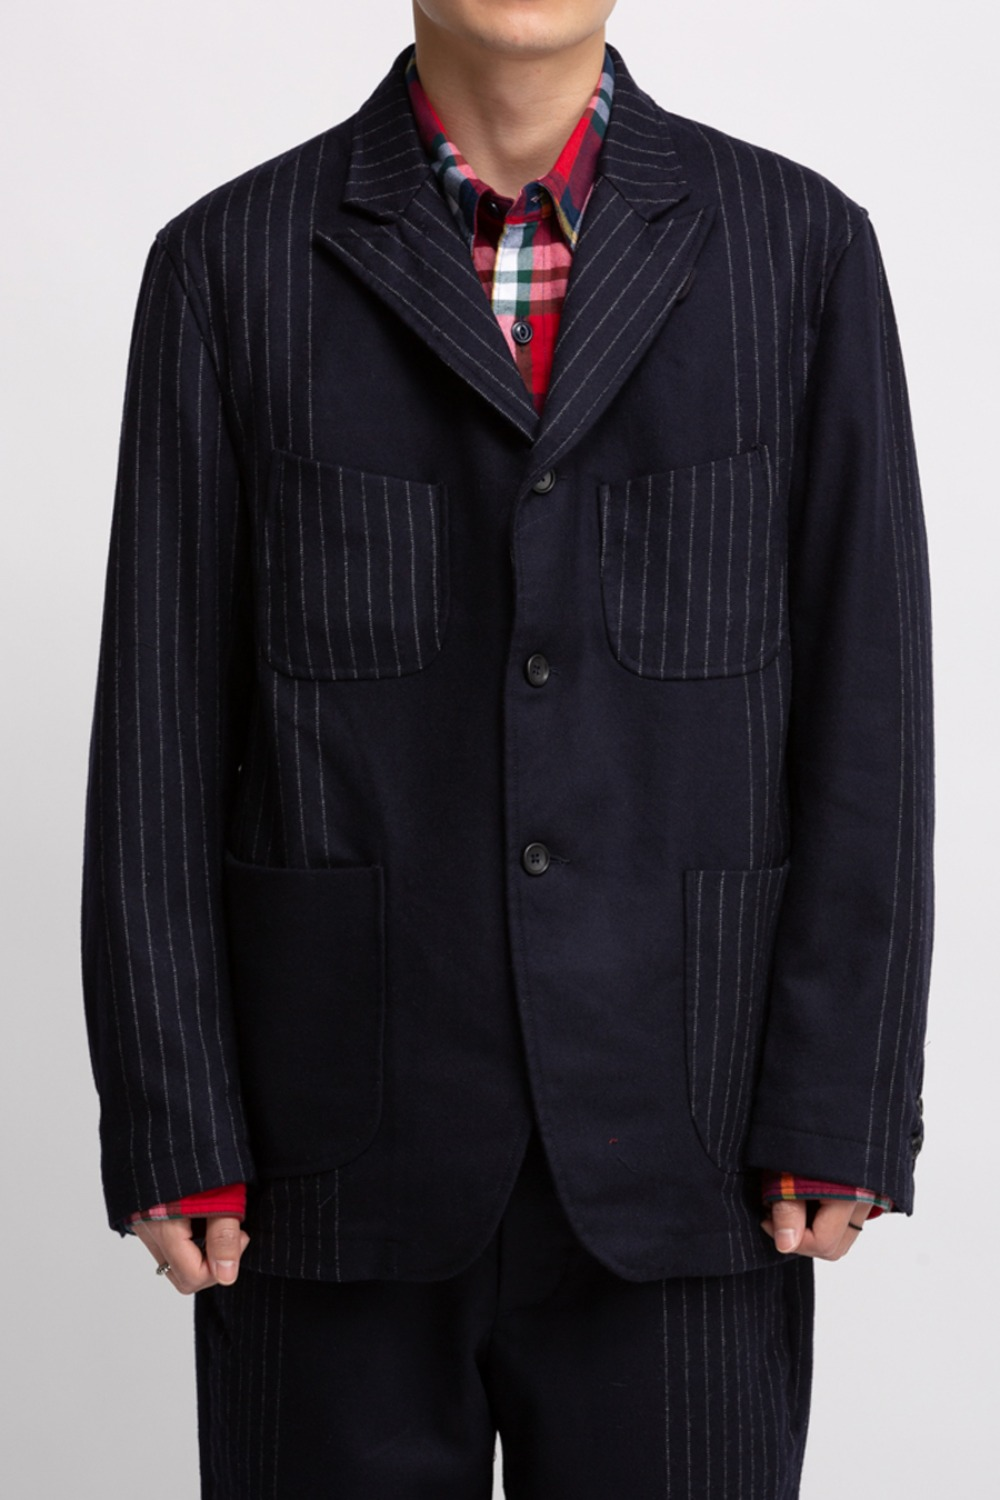 NB JACKET DARK NAVY WOOL CHALK STRIPE